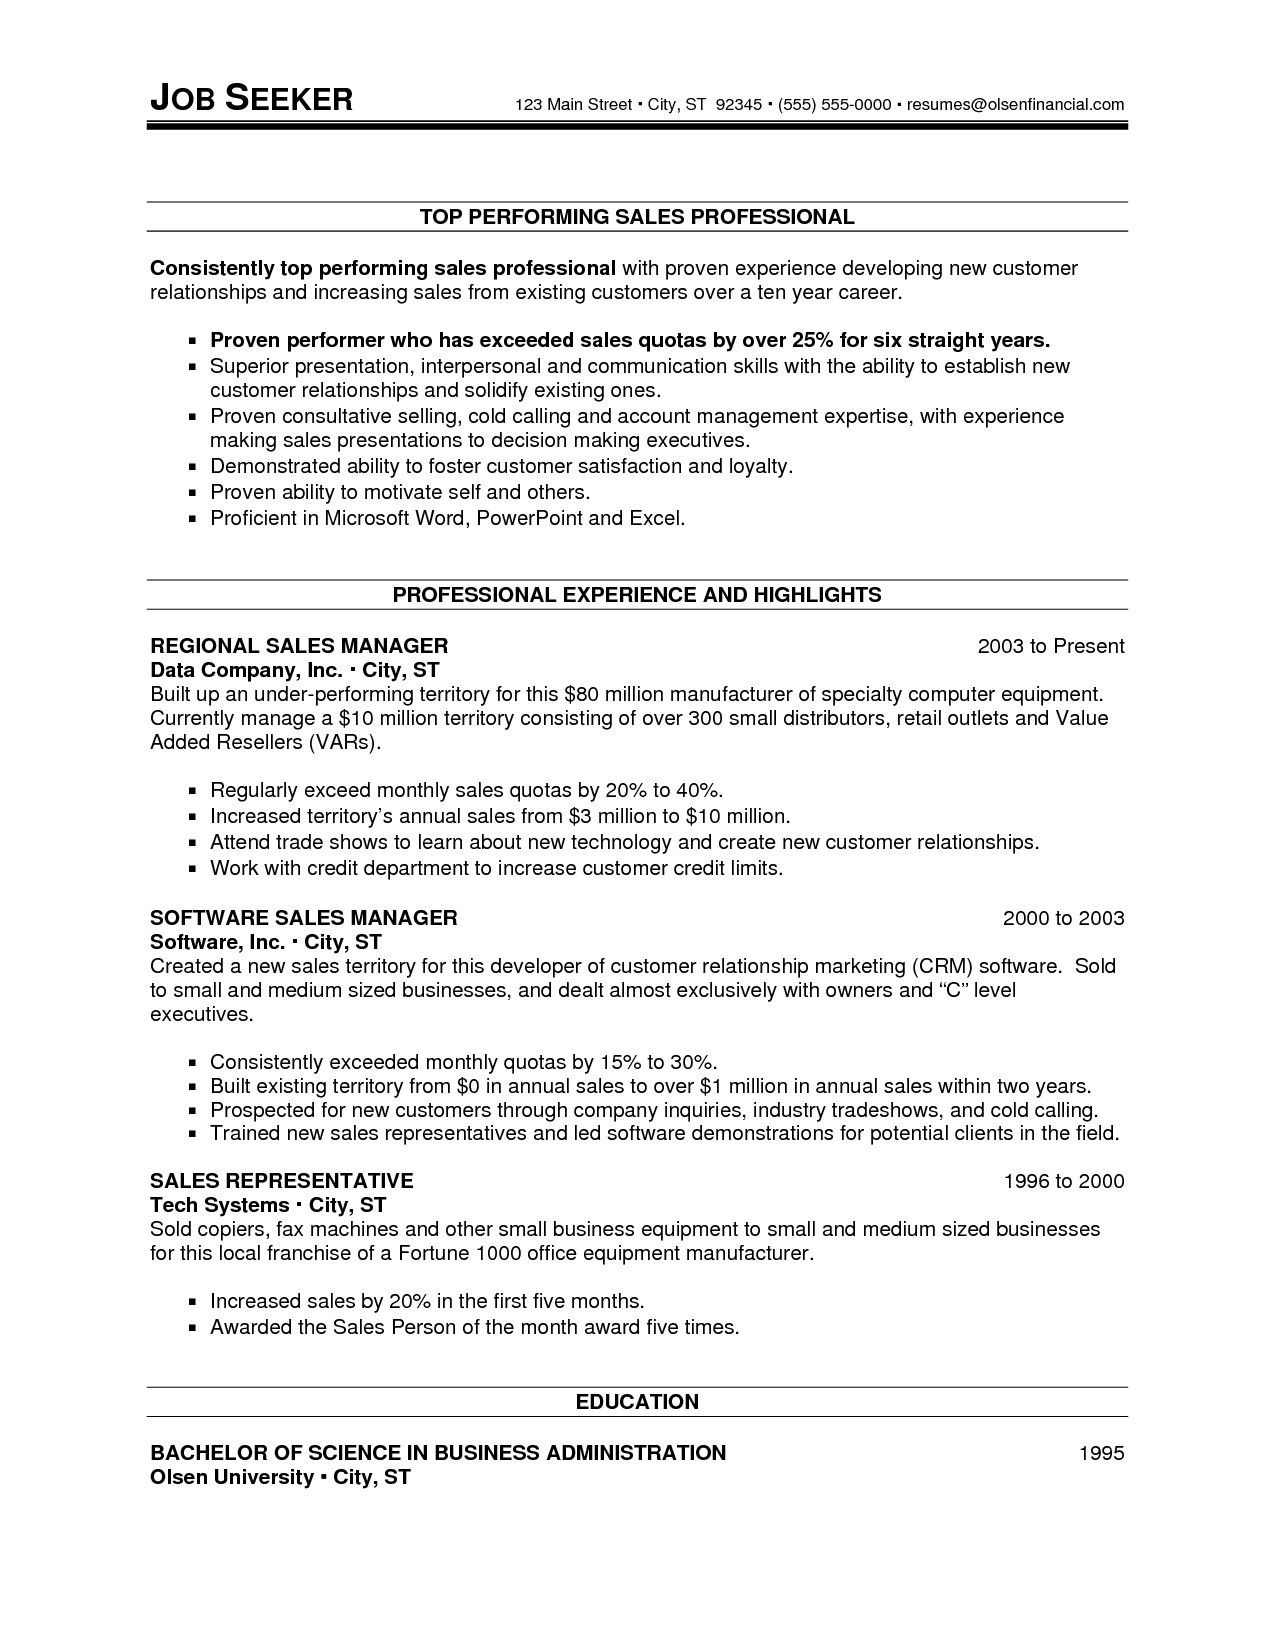 Resume For Experienced Sales Professional